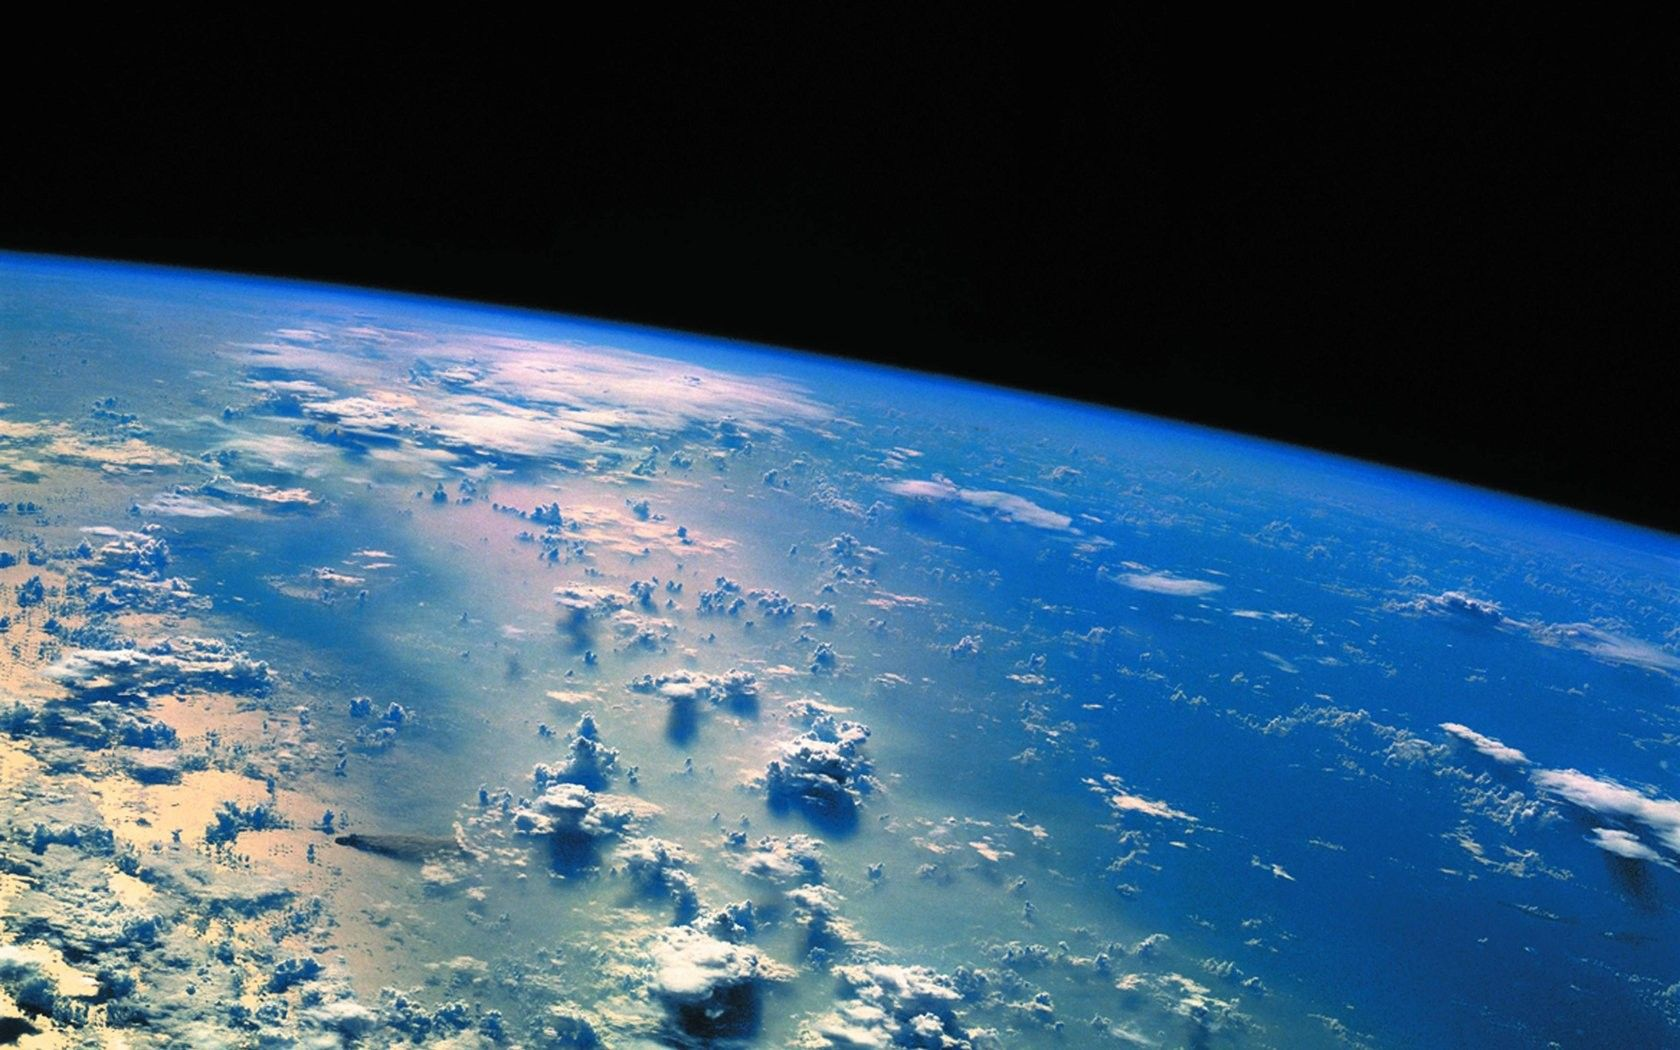 Clouds Earth Stars Outer Space Nature Hd Images Free Download